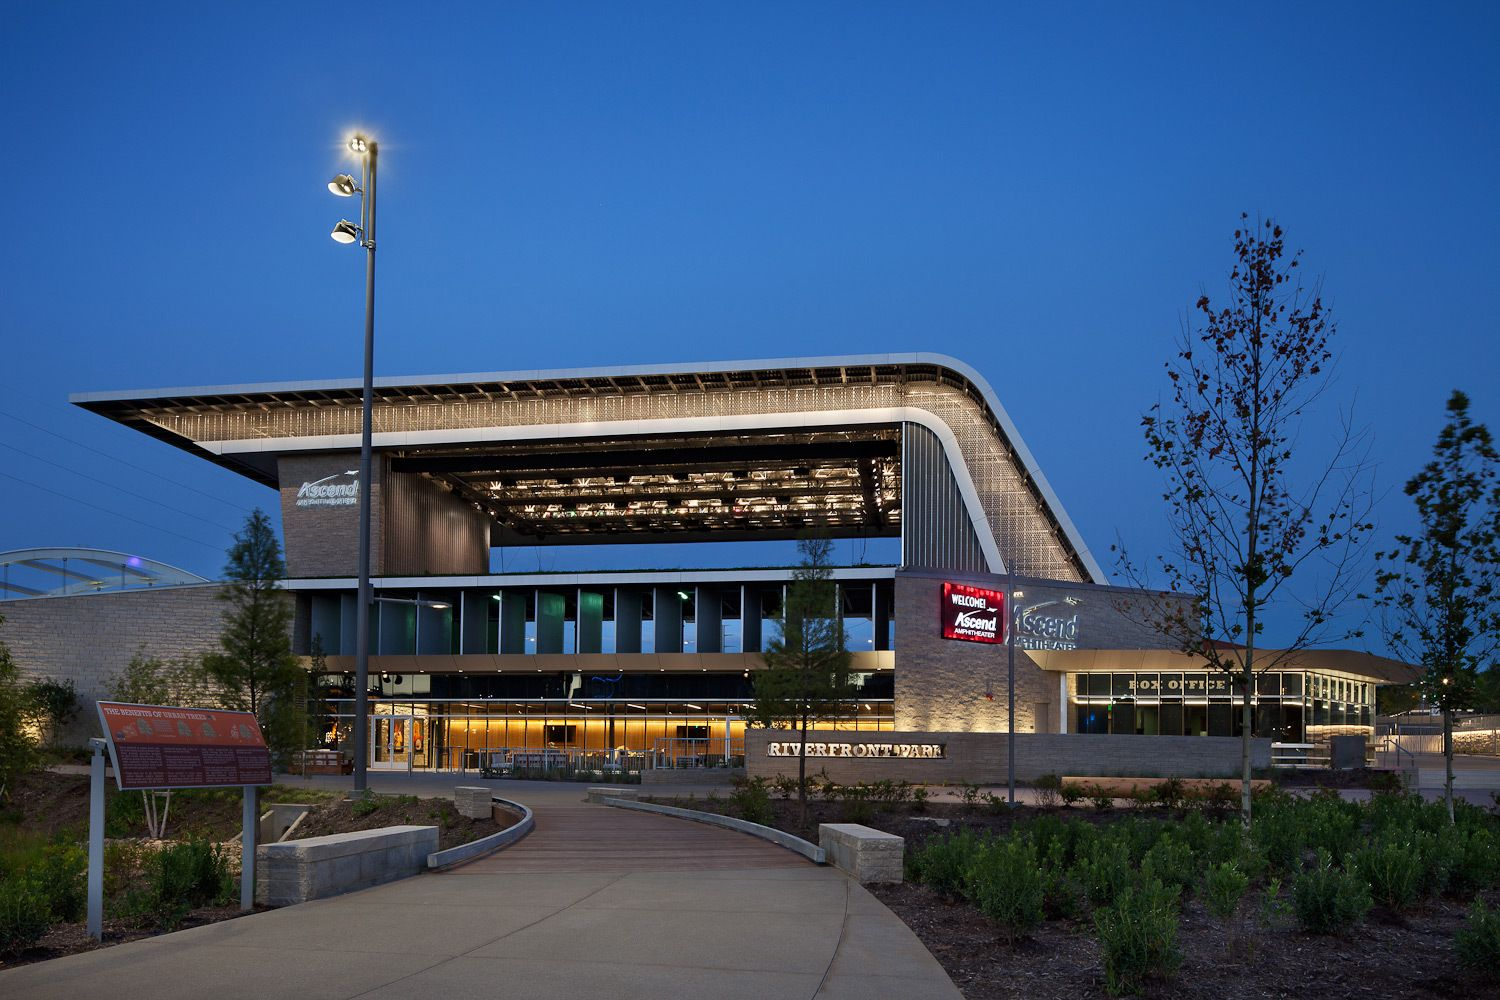 Nashville Riverfront Park and Ascend Amphitheater | Nashville, TNGeneral Contractor - Skanska